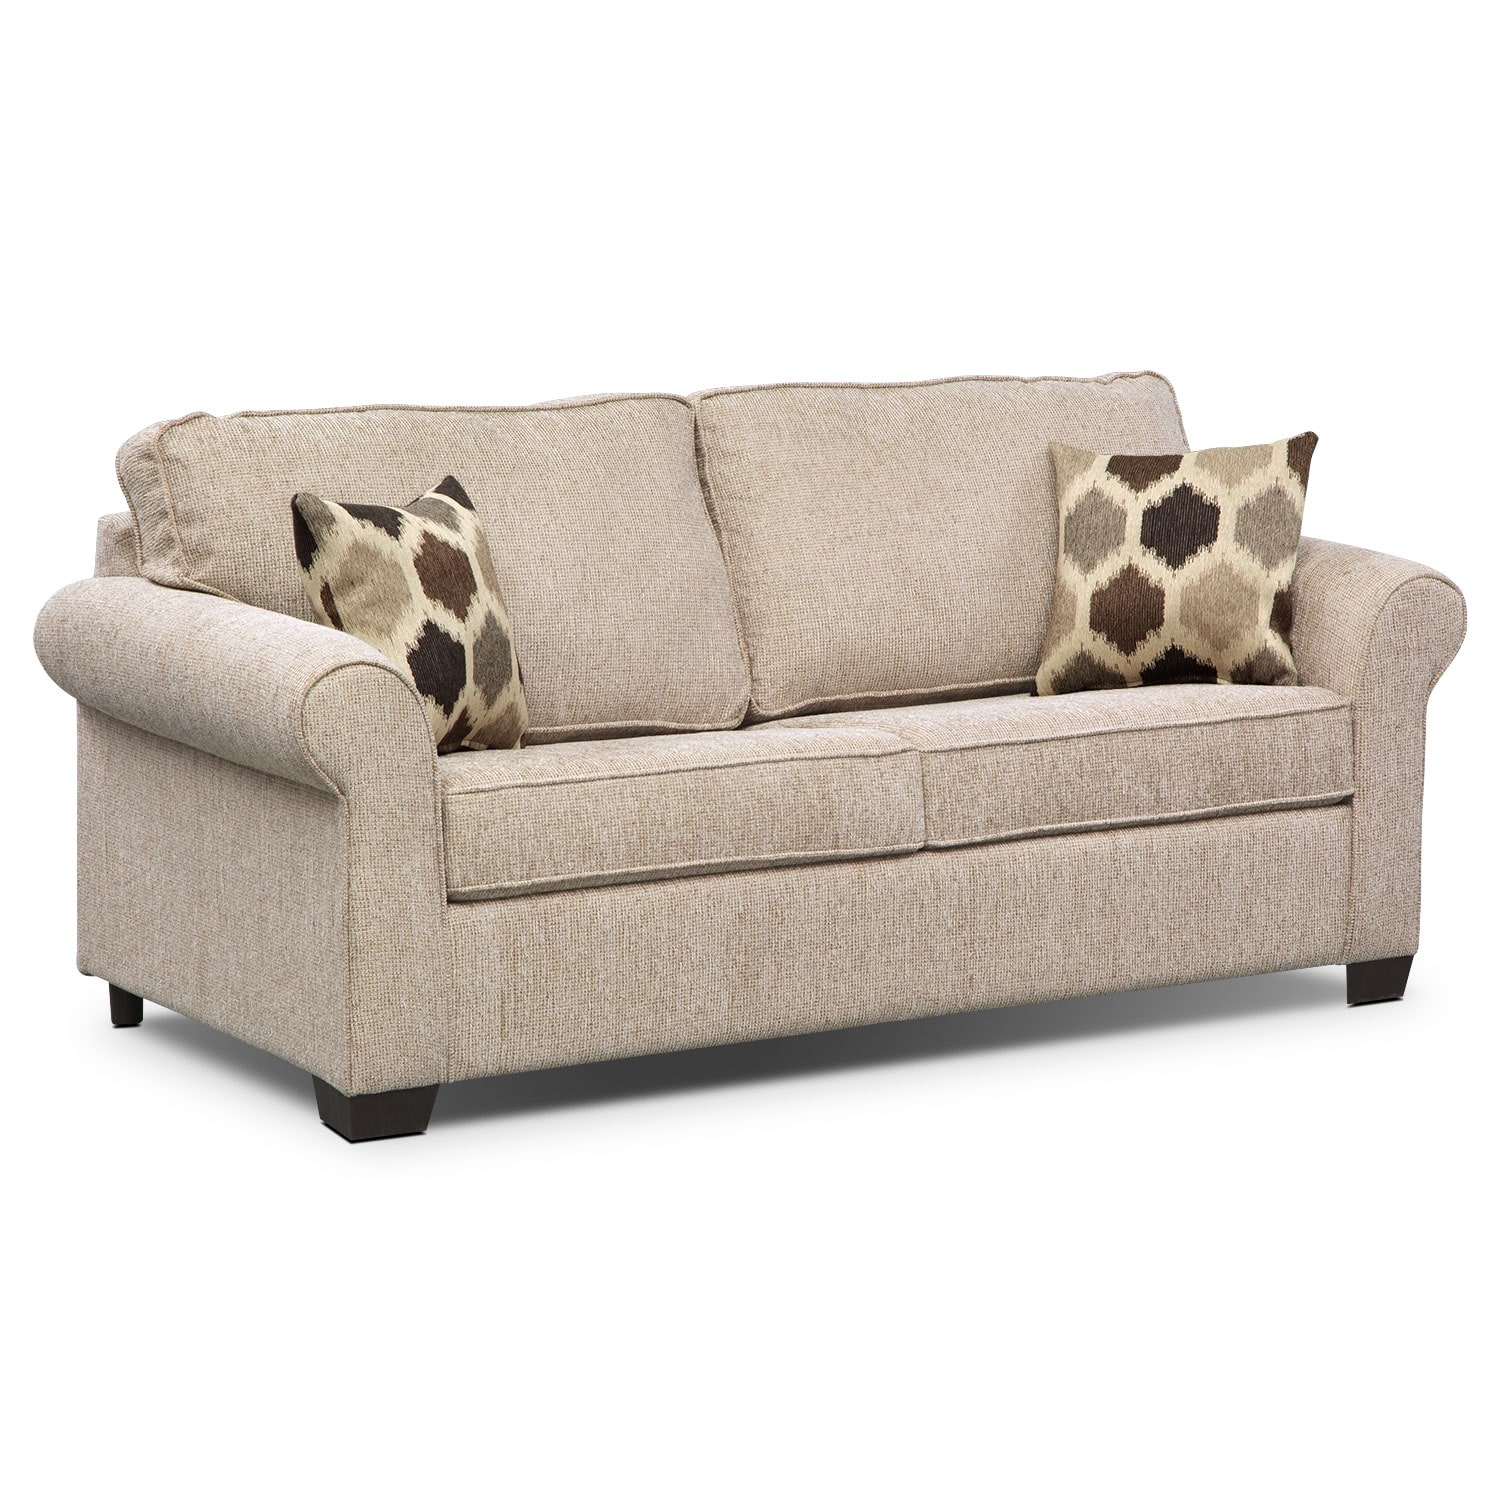 Fletcher full memory foam sleeper sofa american signature furniture Sofa loveseat